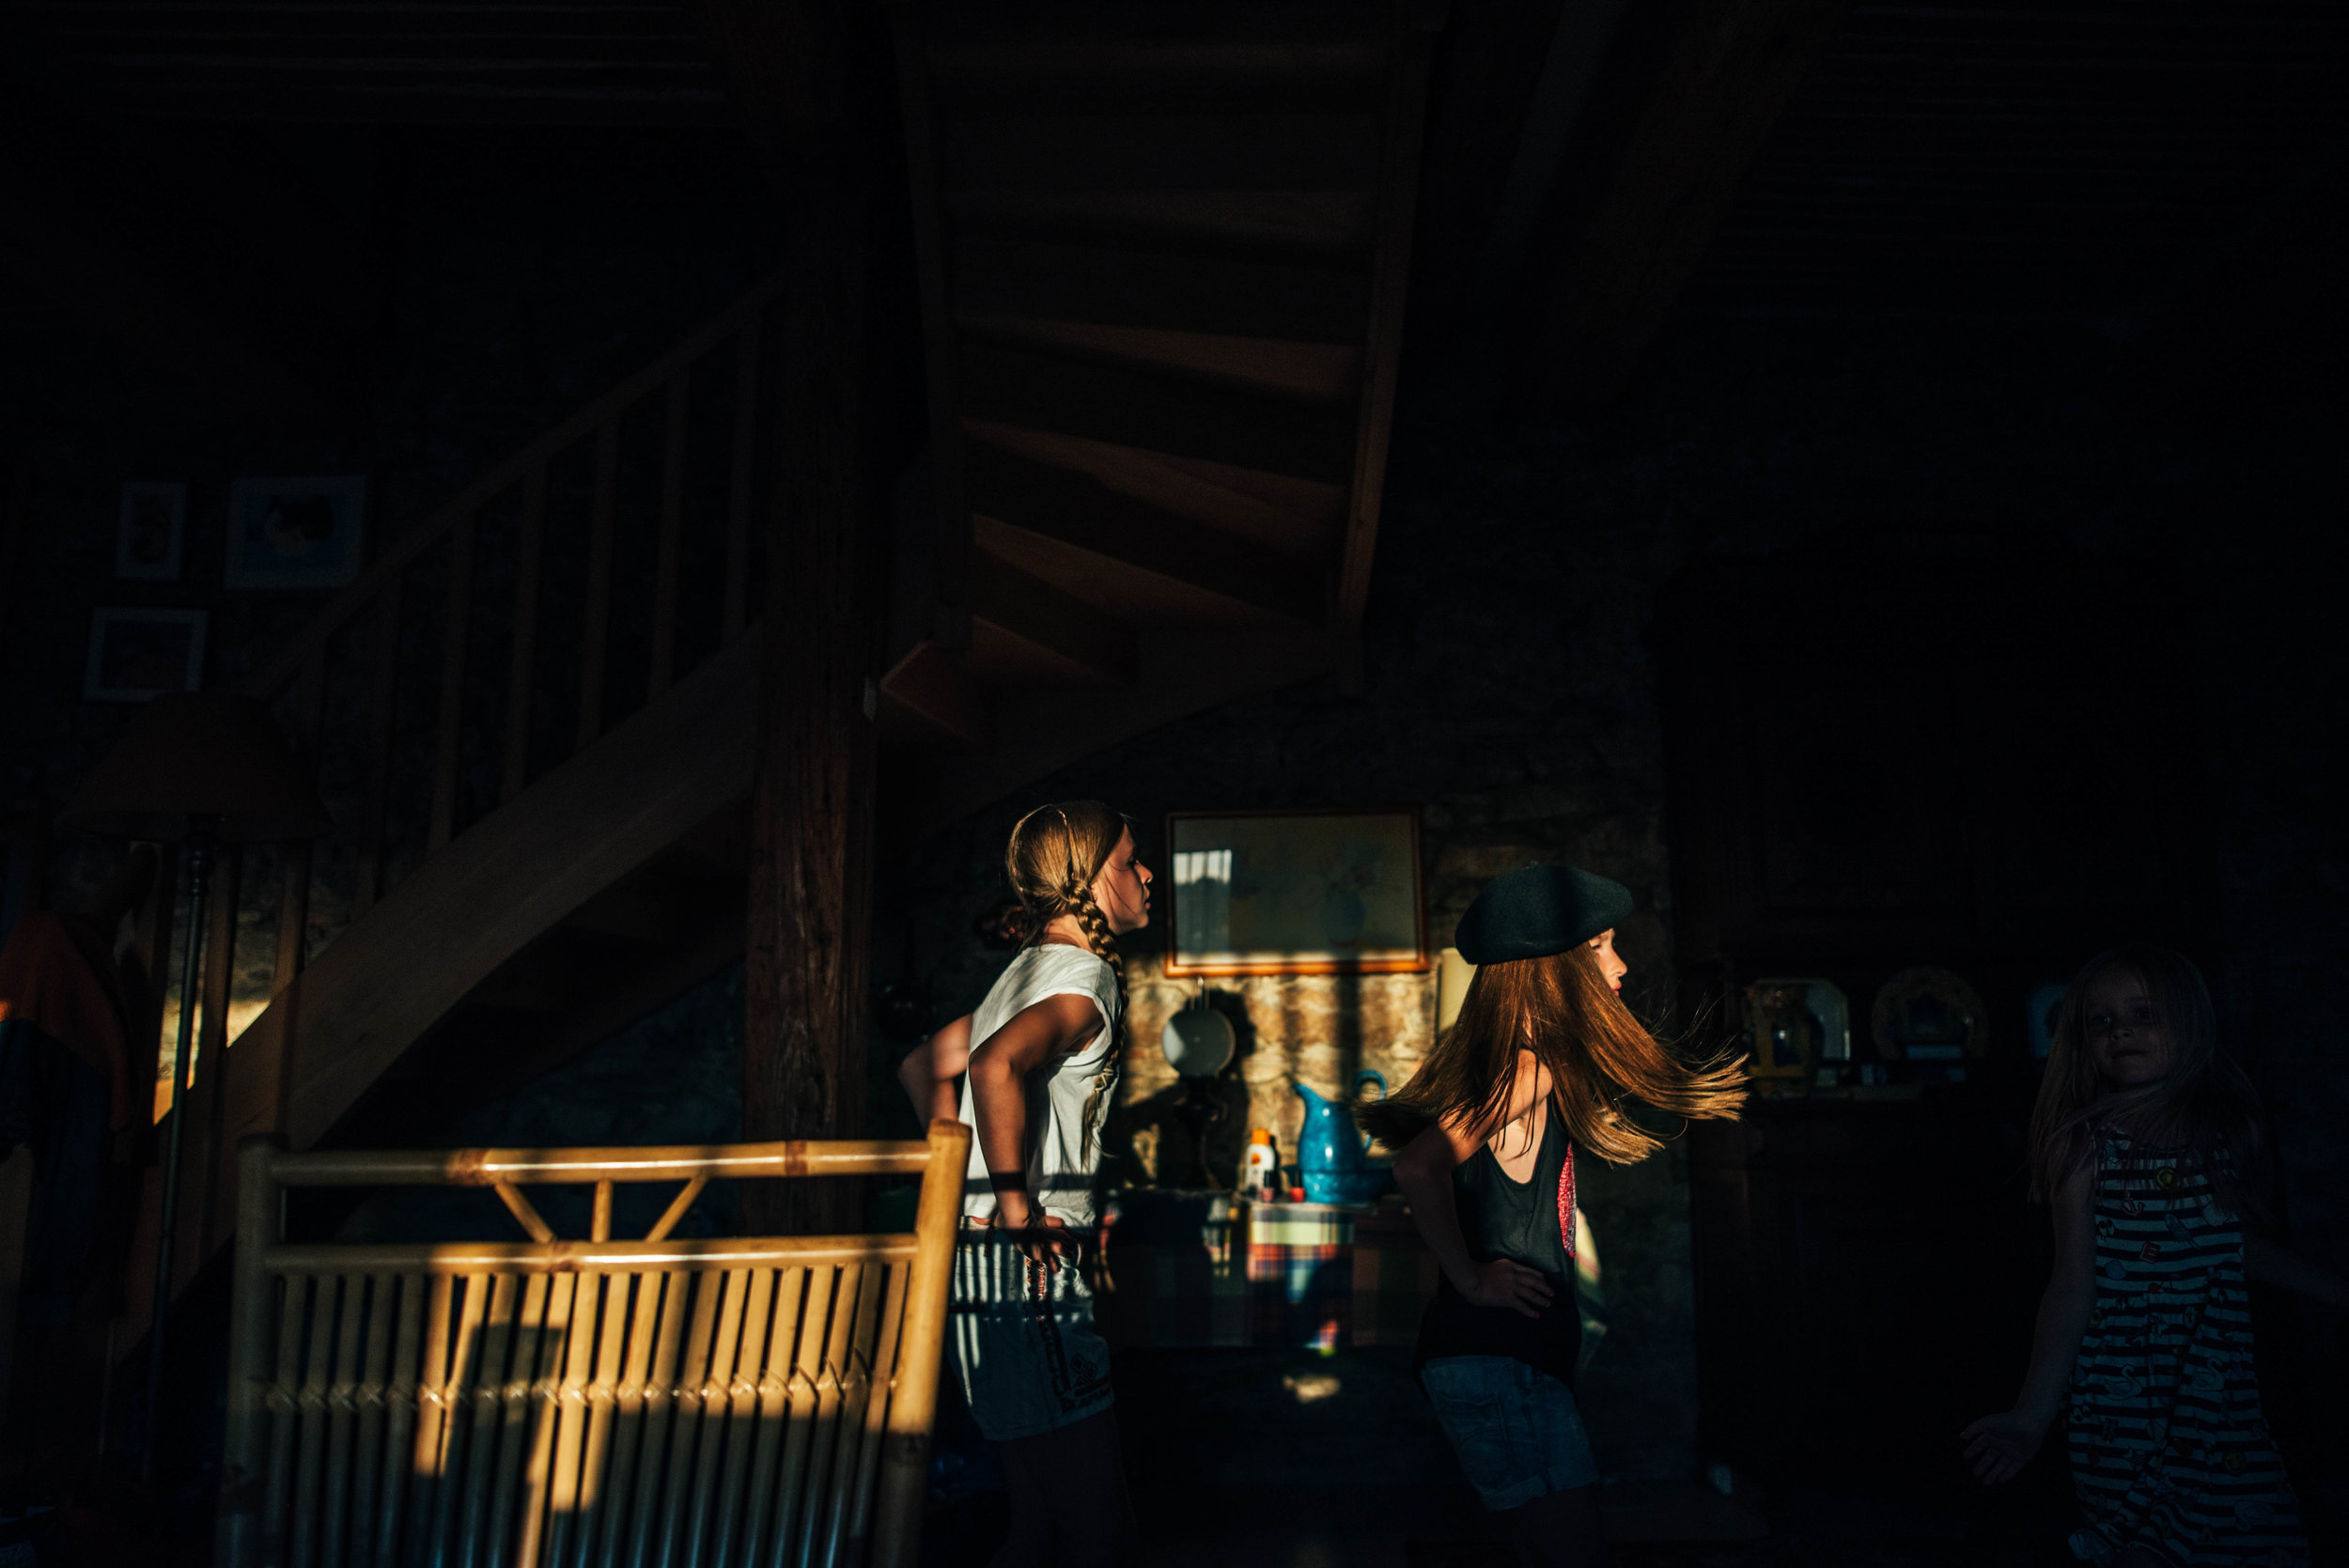 Young girls dance in shadows Essex UK Documentary Portrait Photographer